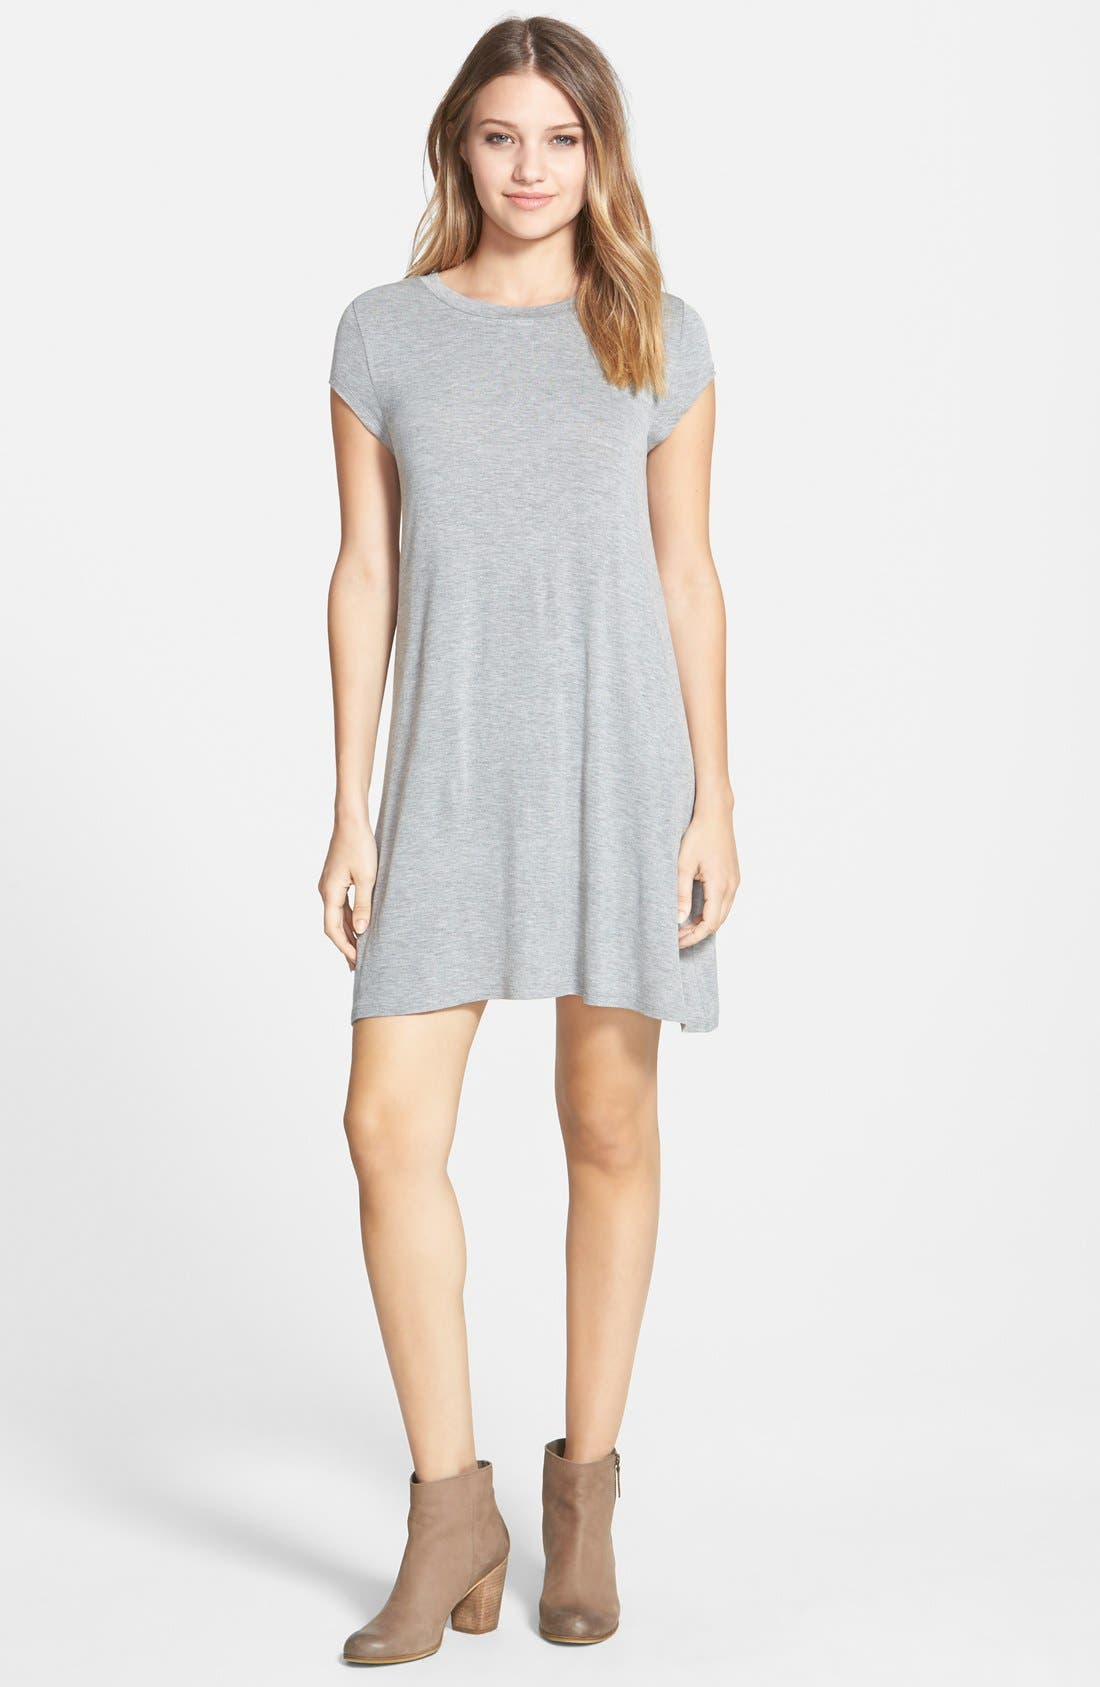 Alternate Image 1 Selected - Billabong 'Last Minute' T-Shirt Dress